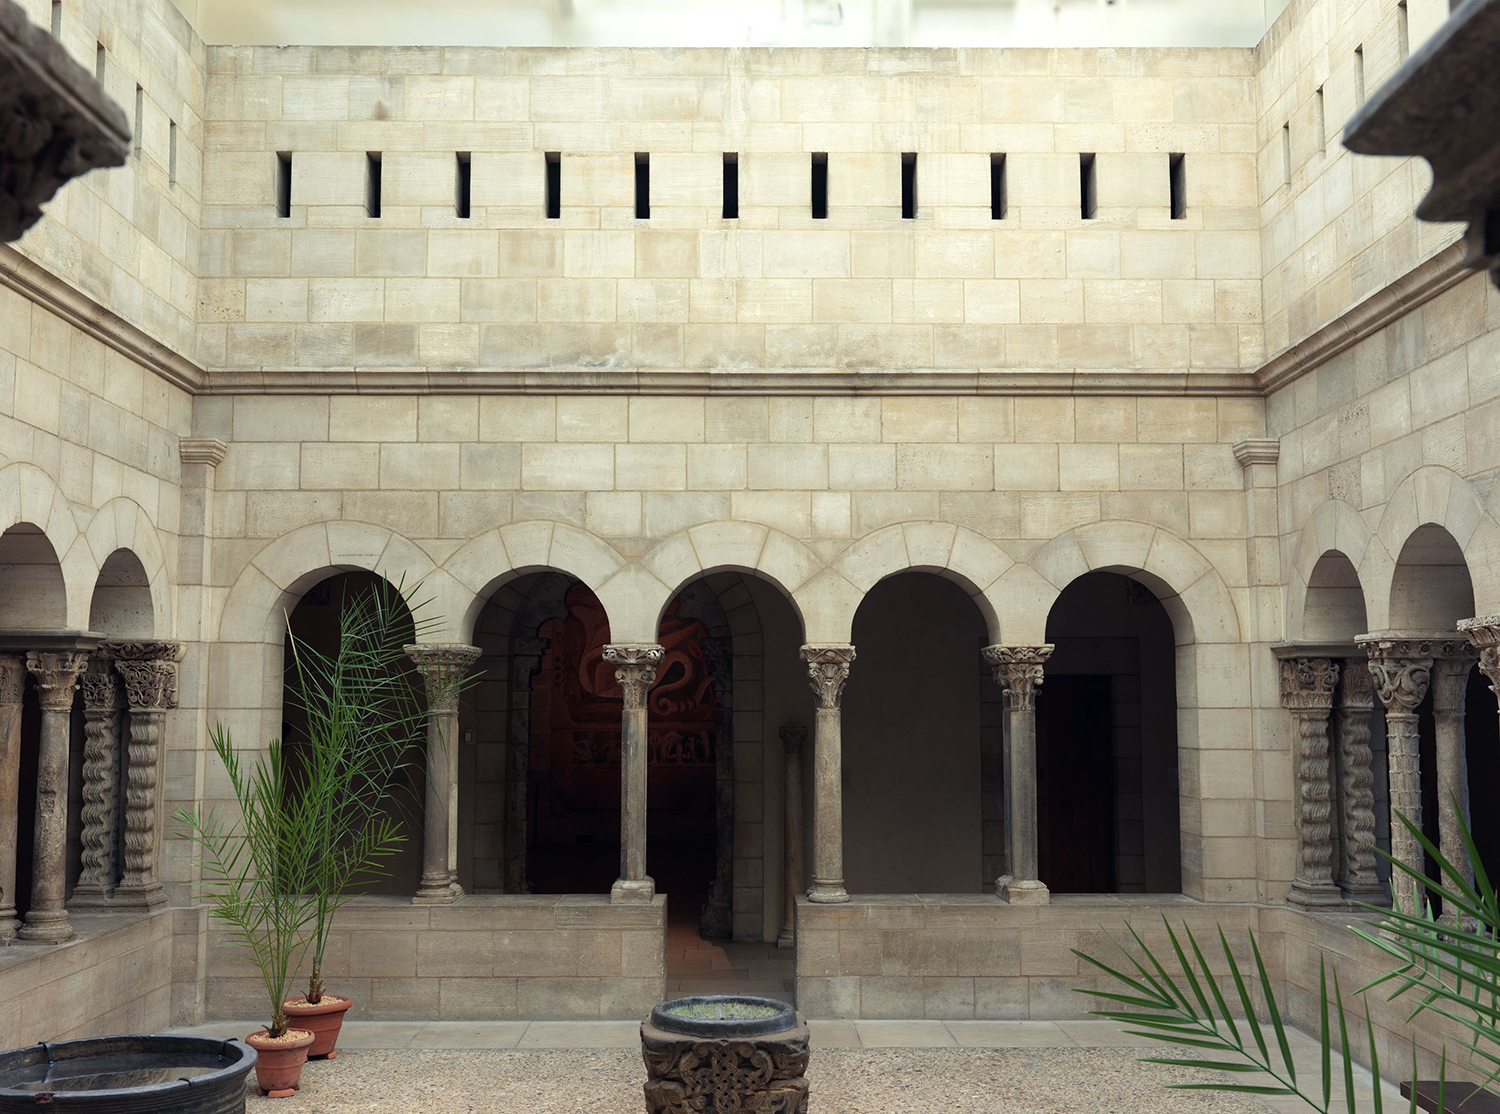 Figure 4: View of the Saint-Guilhem Cloister at the Cloisters Museum in New York City. From the Benedictine monastery of Saint-Guilhem-le-Desert, near Montpelier, France, late 12th–early 13th century. Image © The Metropolitan Museum of Art, New York.